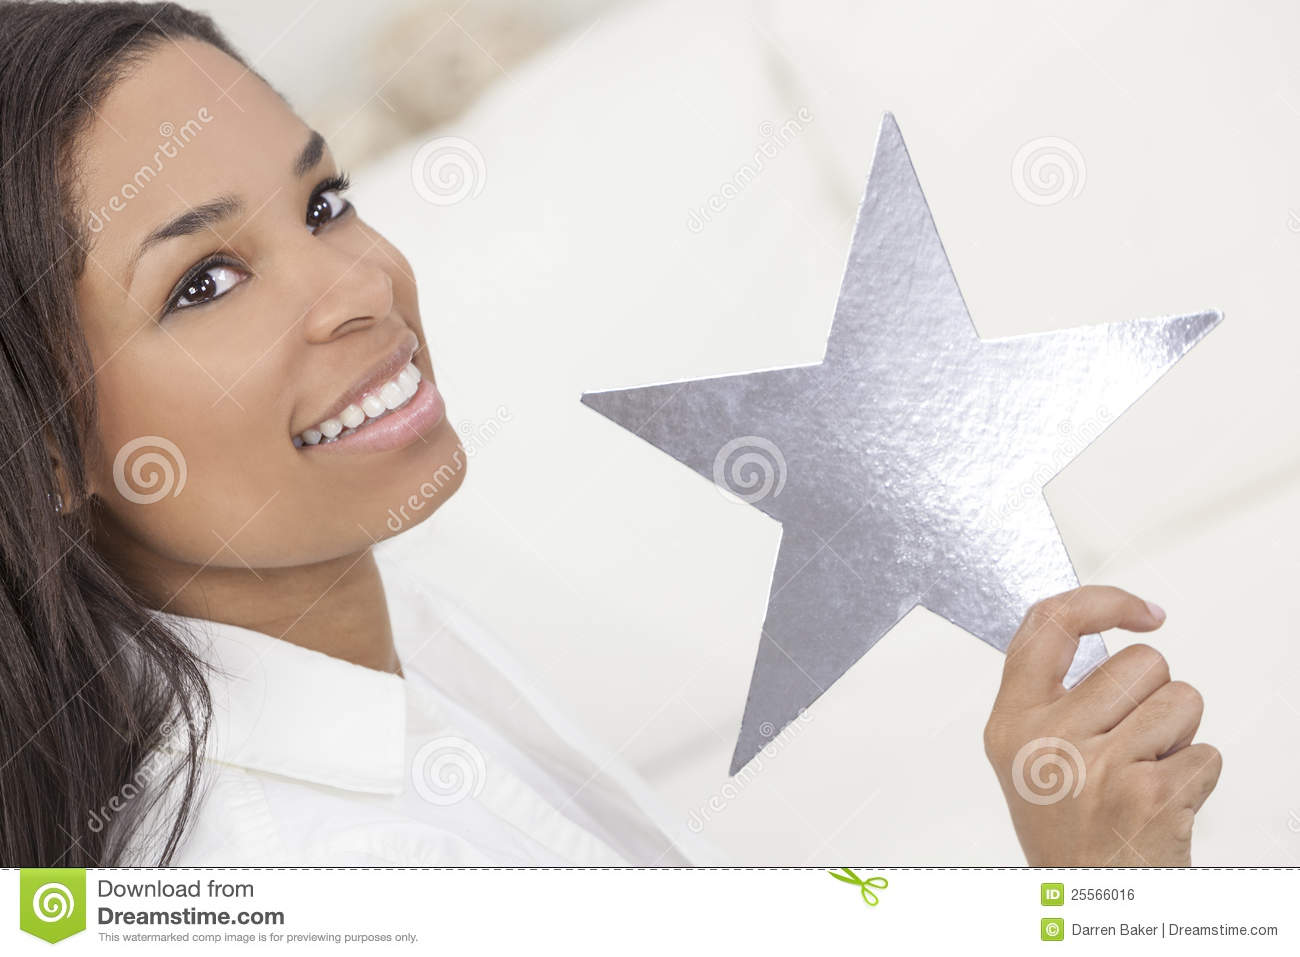 African American woman smiling, relaxing and holding a silver star